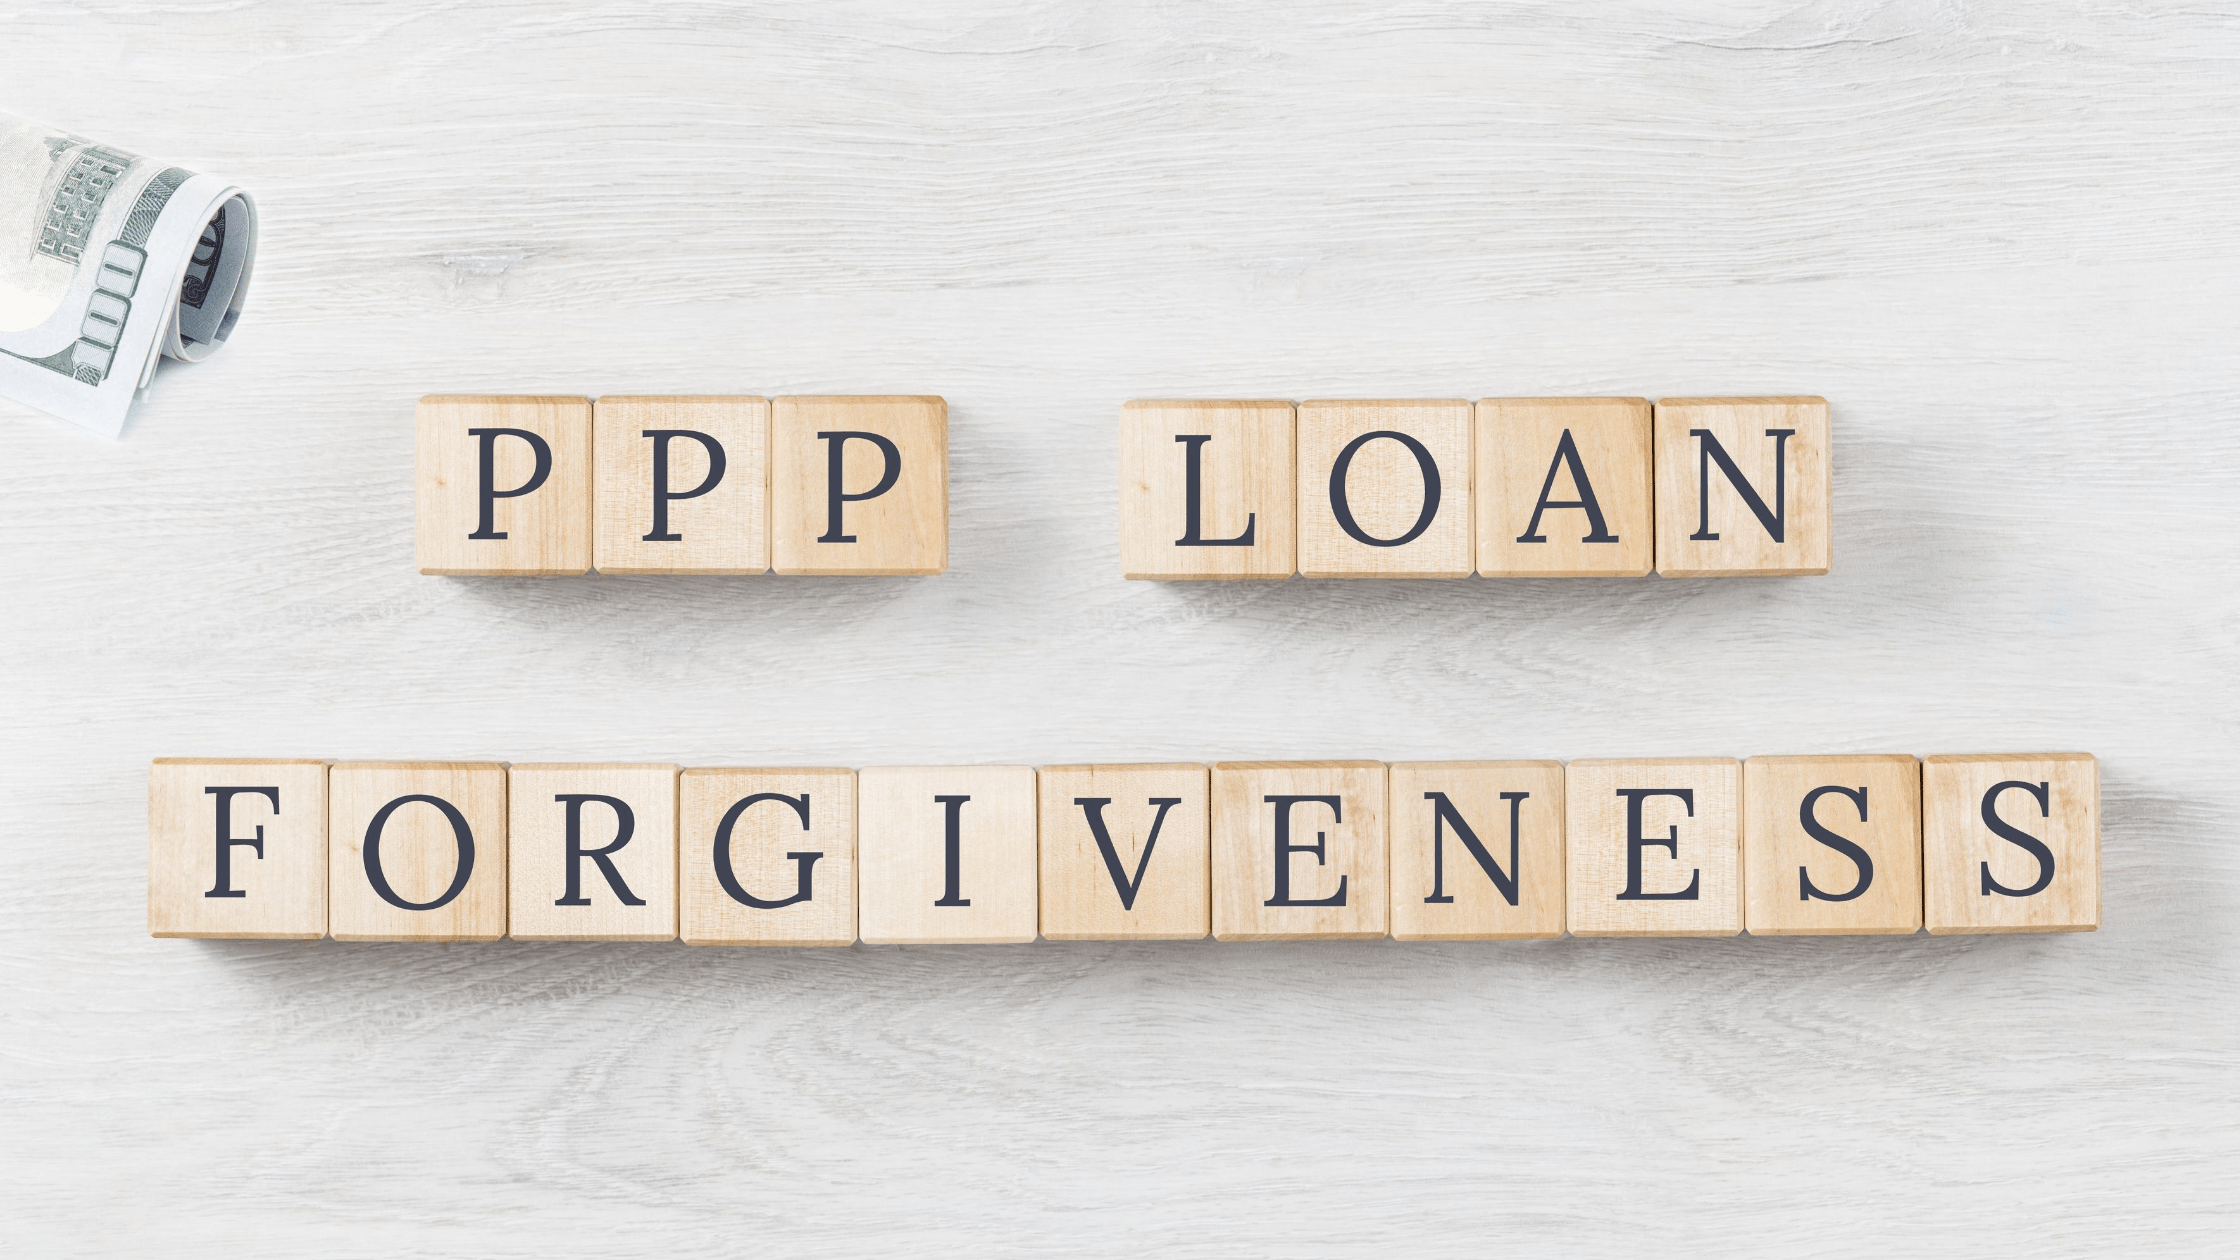 PPP Loan Forgiveness Guidelines